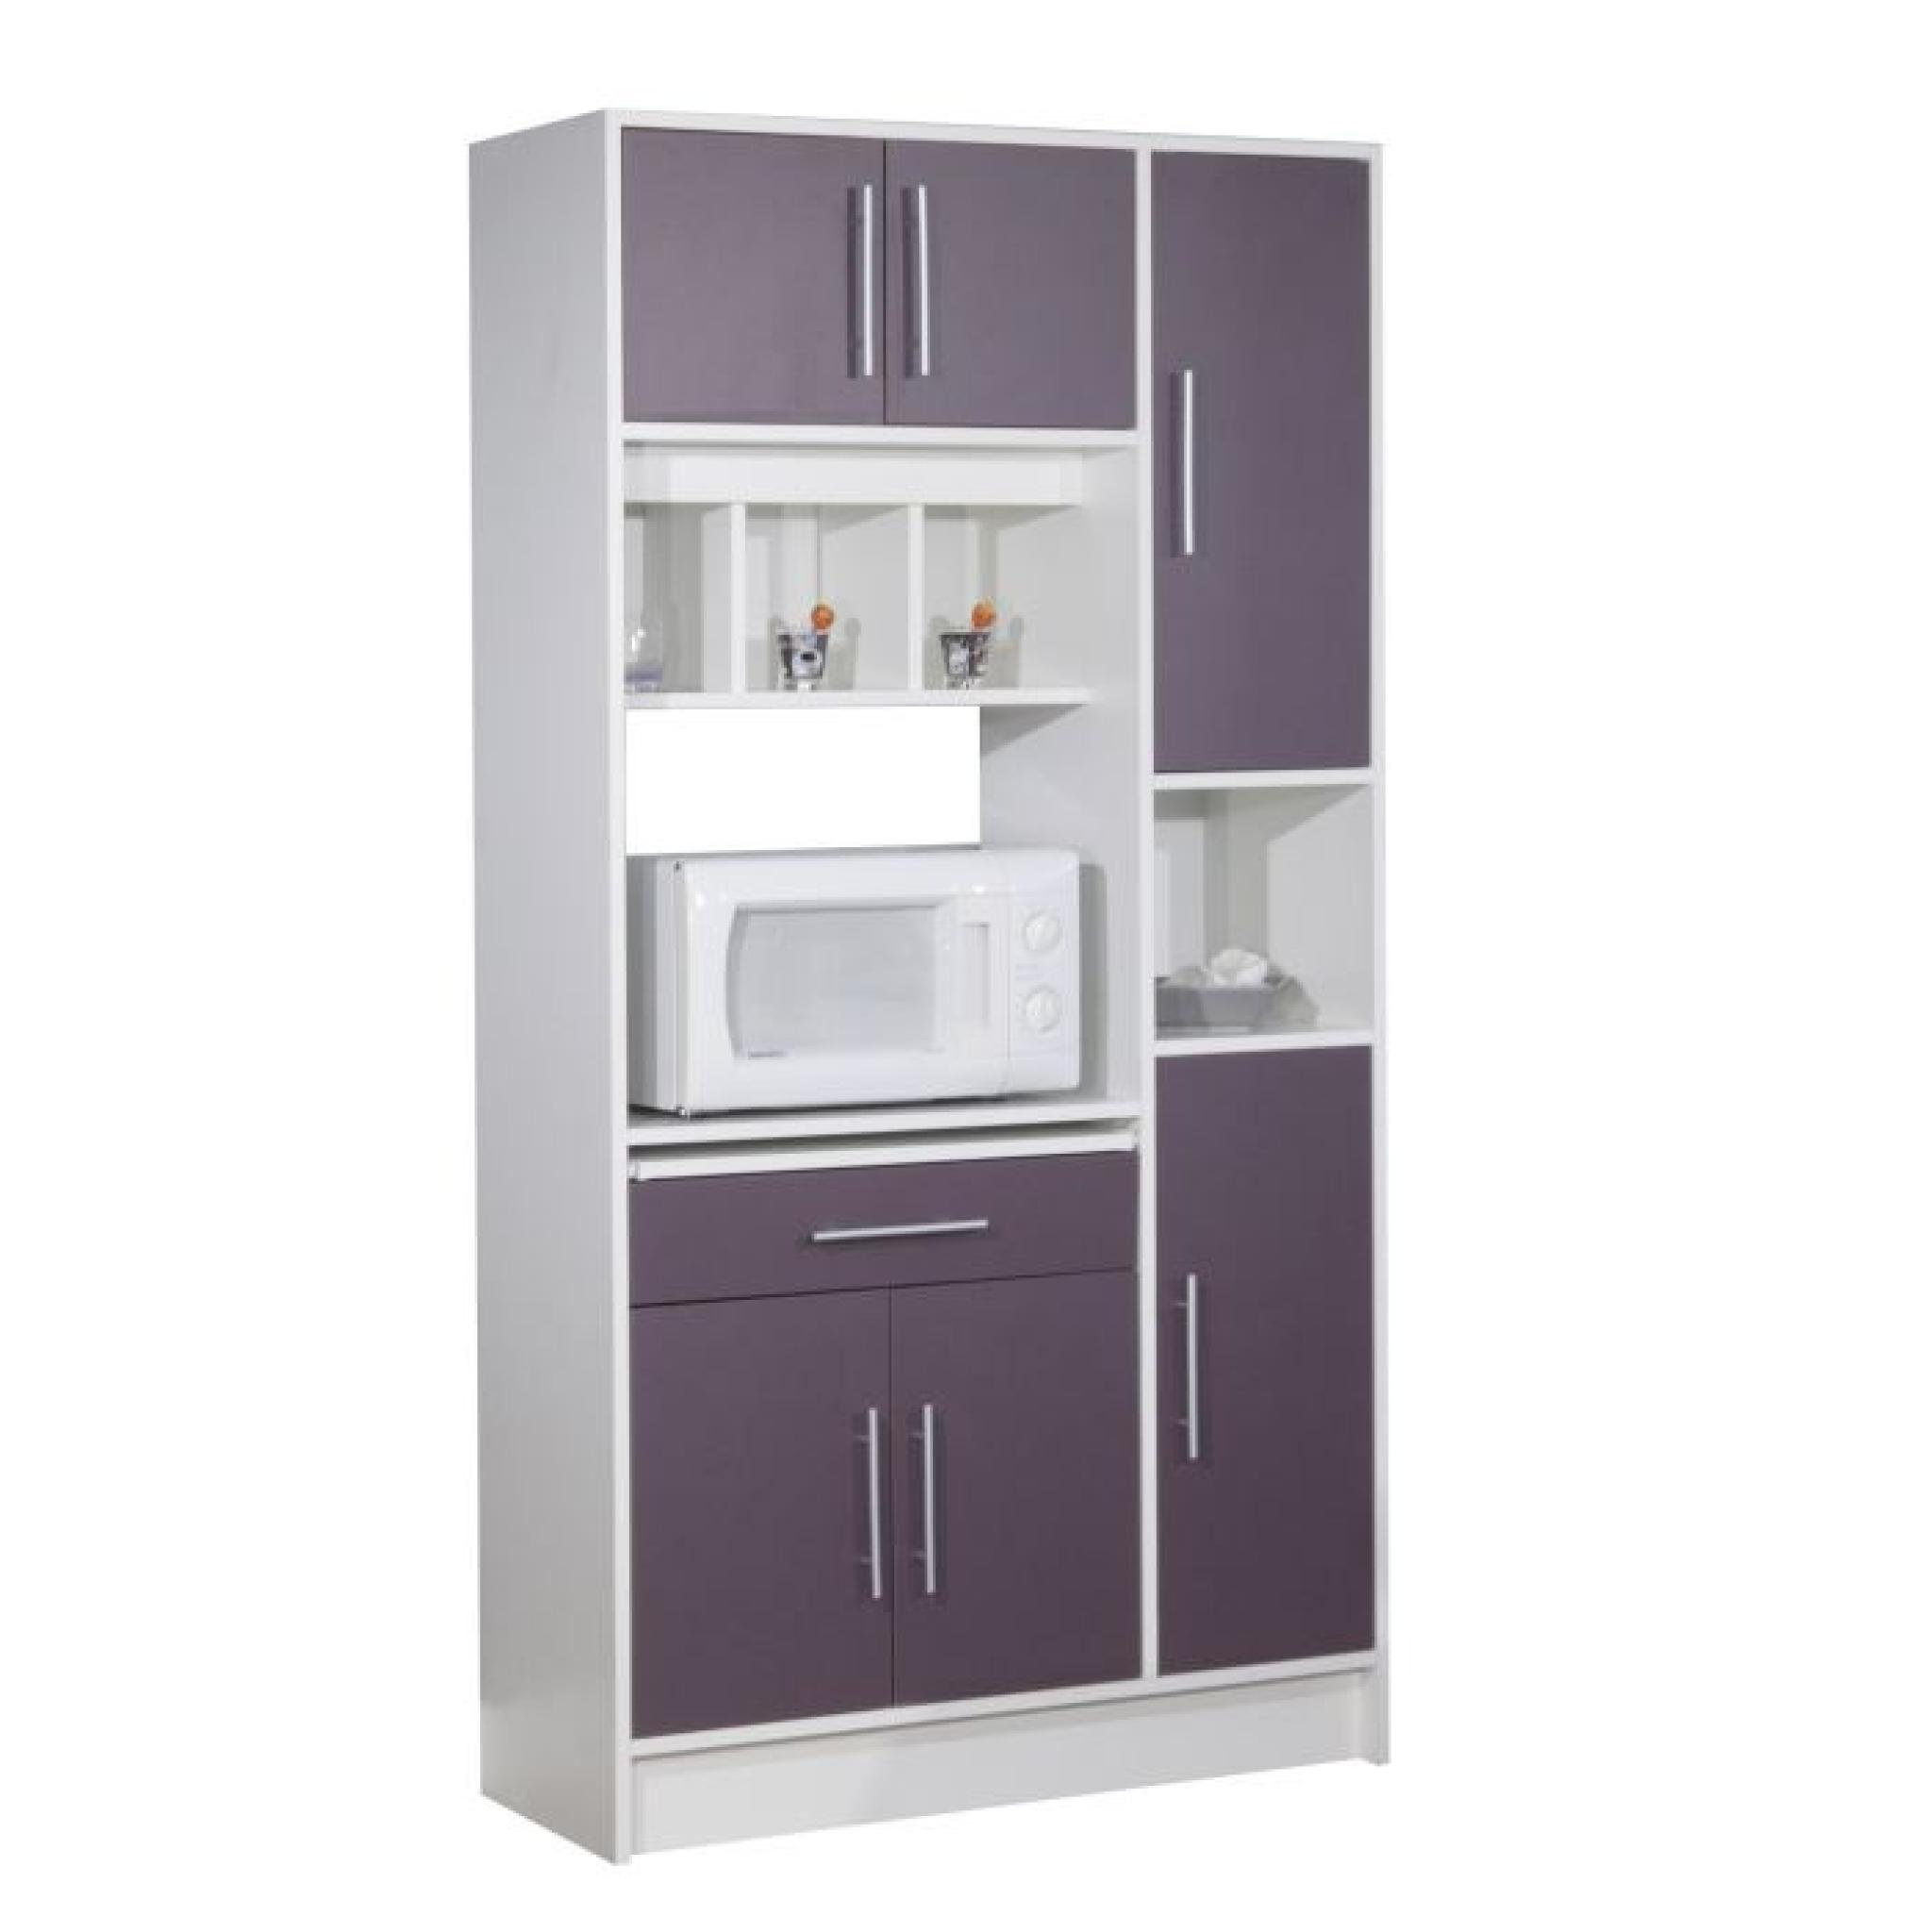 pepper buffet de cuisine 88cm aubergine achat vente buffet de cuisine pas cher couleur et. Black Bedroom Furniture Sets. Home Design Ideas